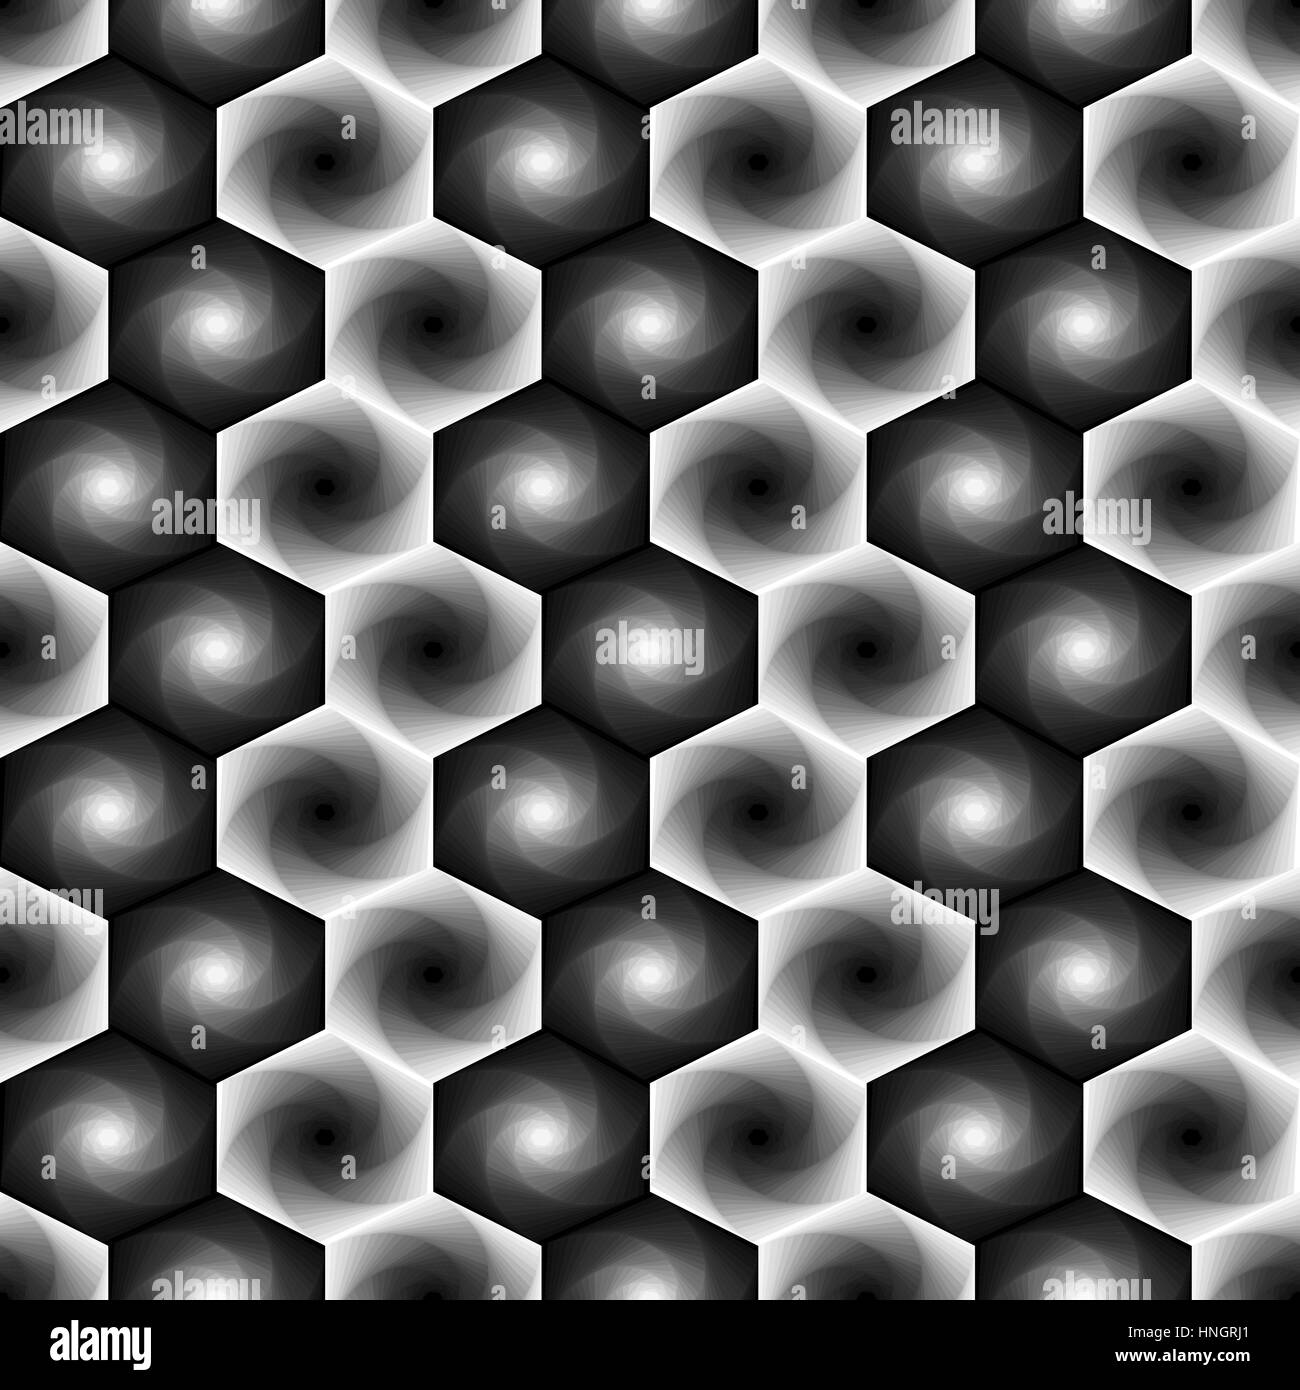 Abstract seamless vector pattern with rotating hexagonal shapes forming the whirling sequences in grey hues - Stock Vector